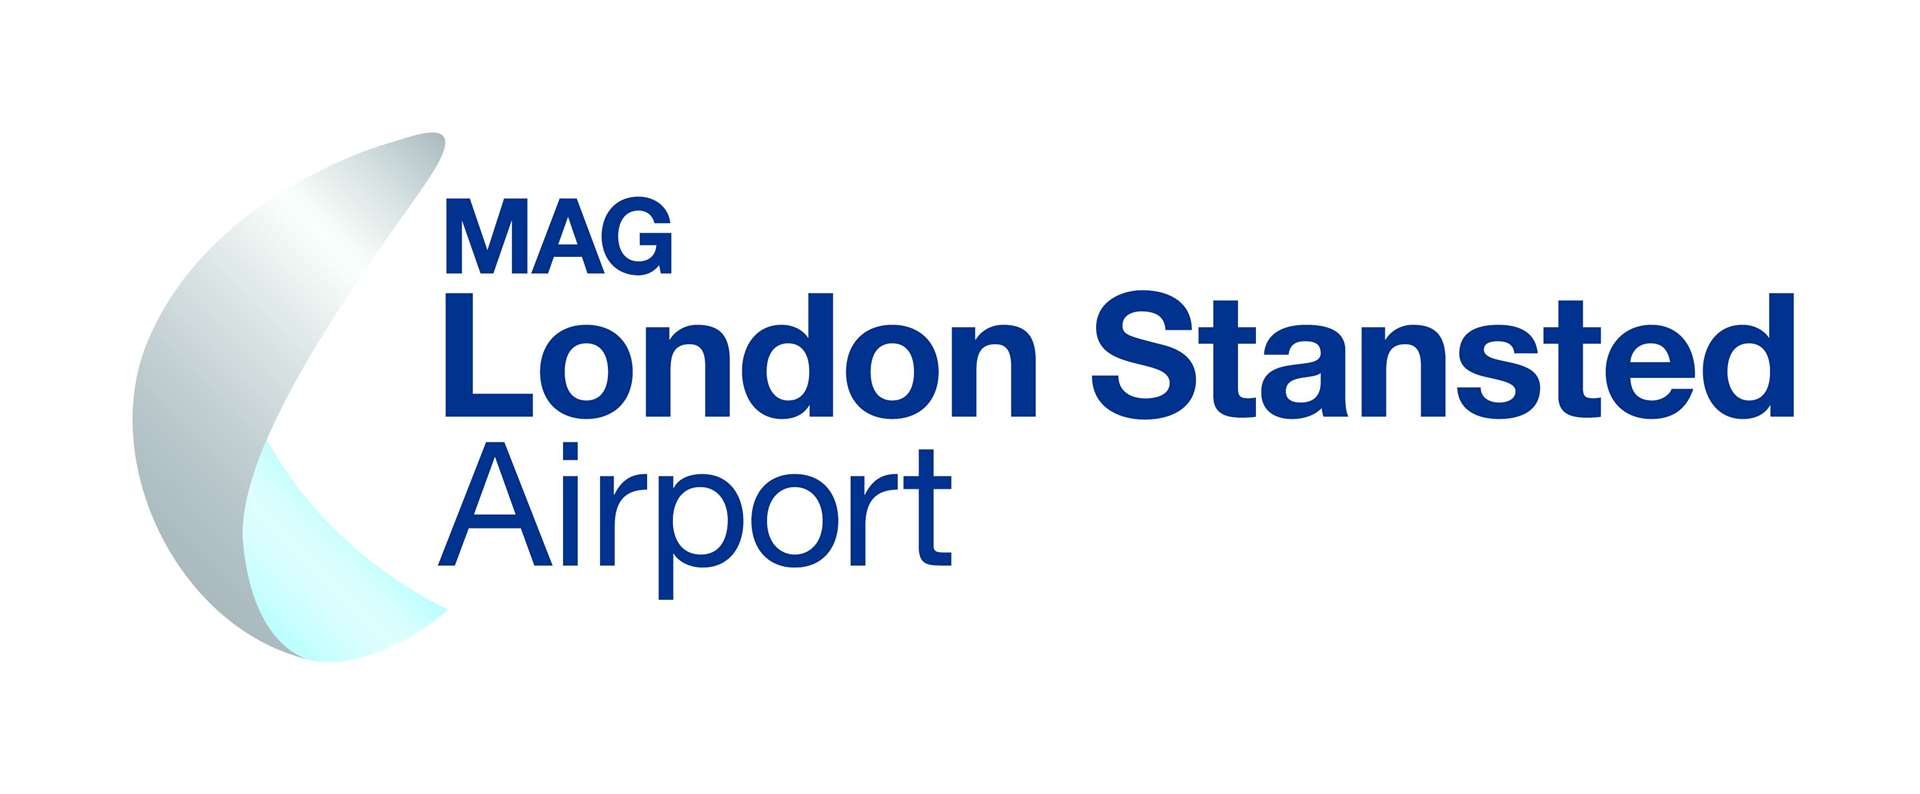 London Stansted Airport logo (52124497)